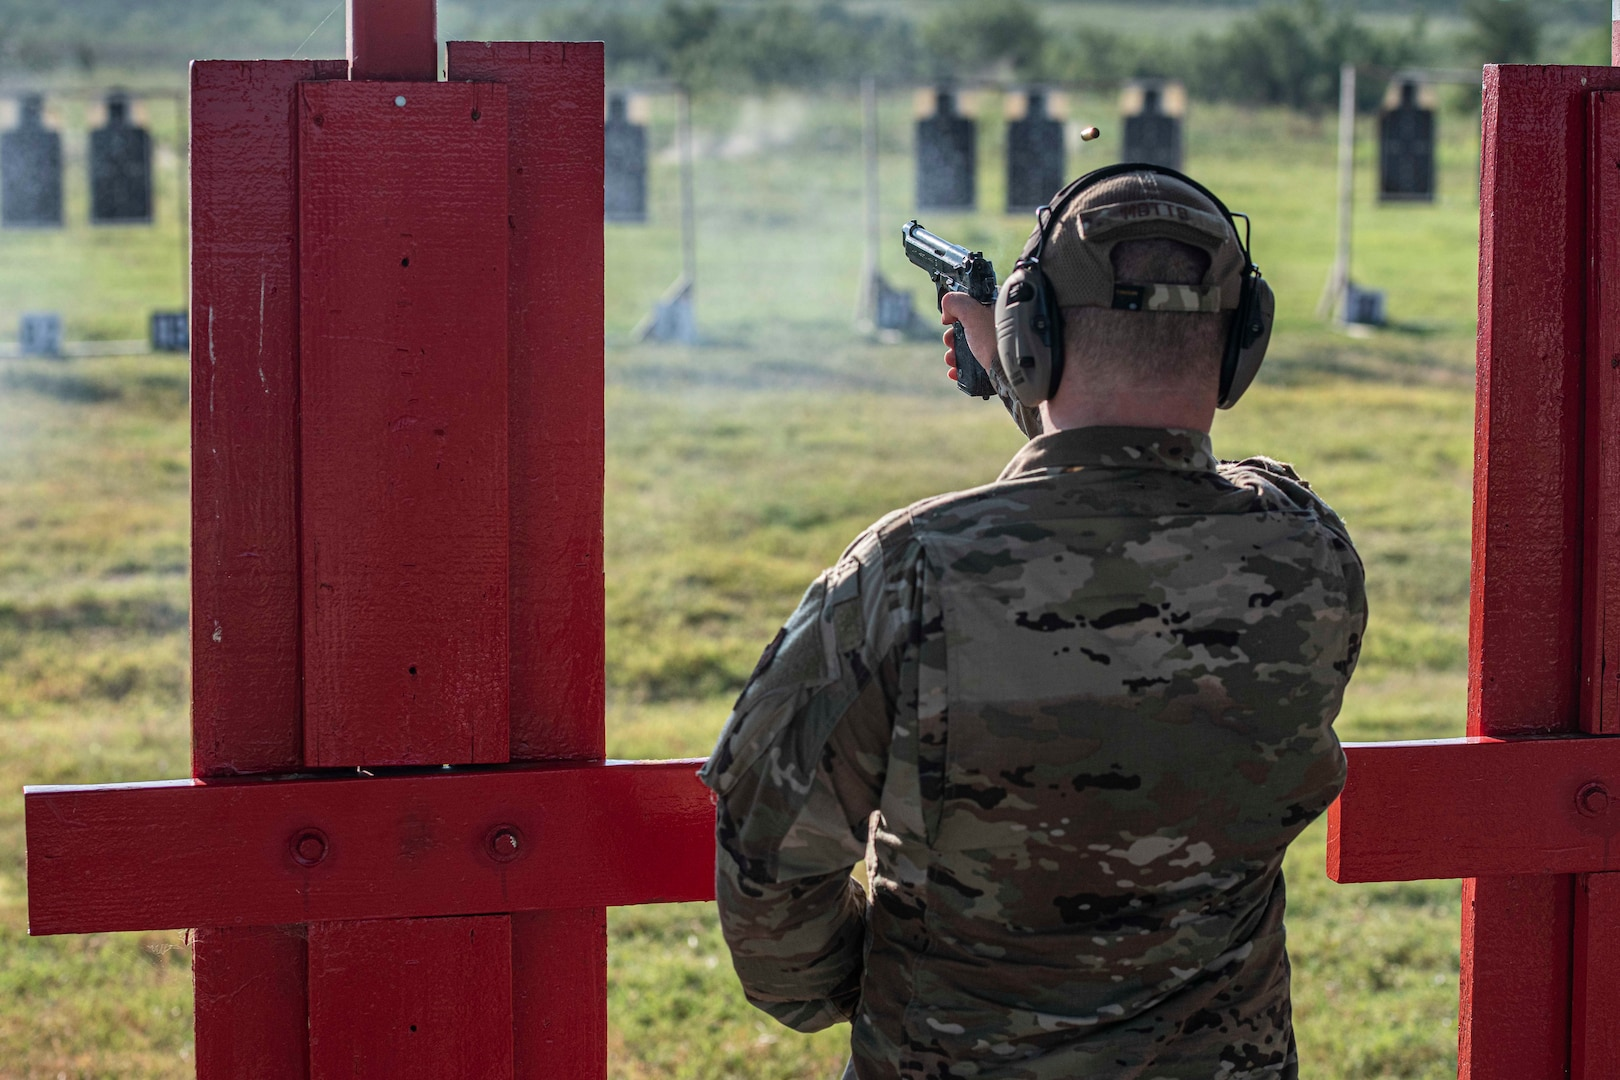 Shooter fires with a Beretta M9